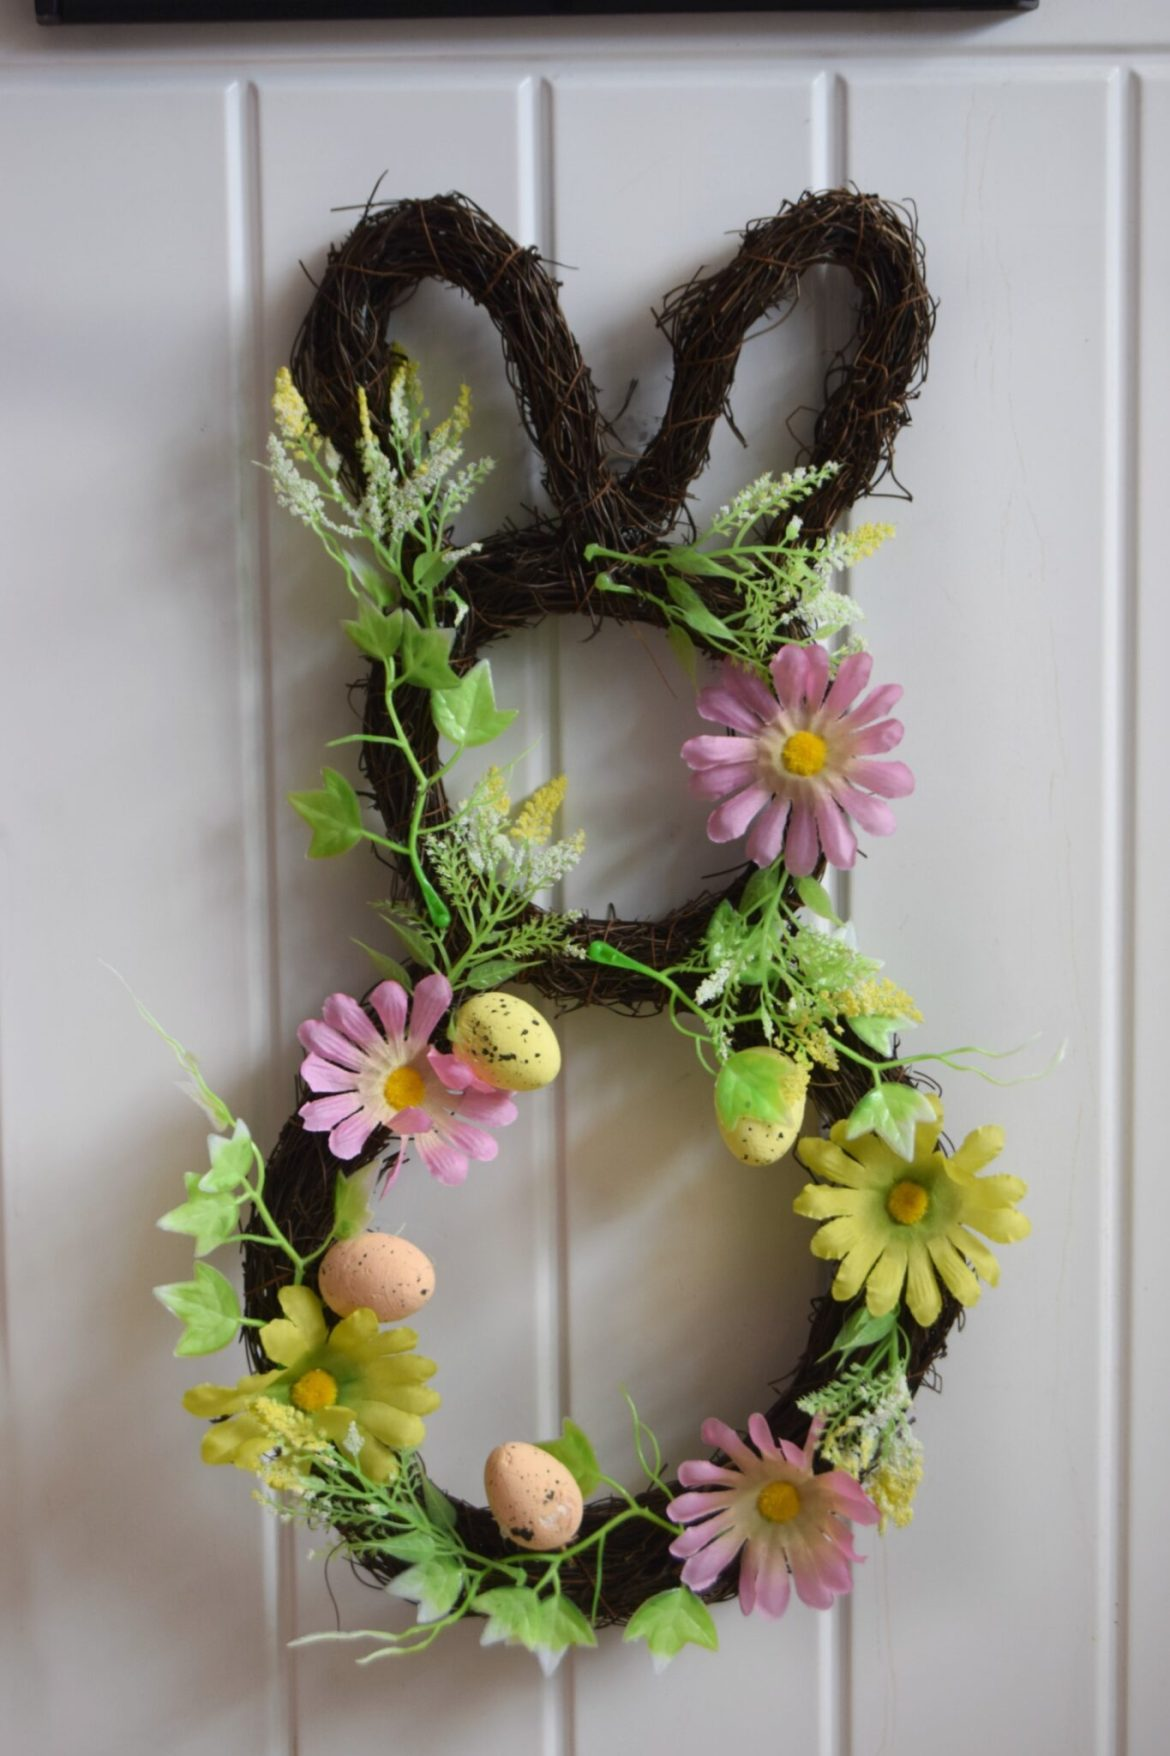 Bunny wreath decorated with spring flowers and easter eggs.